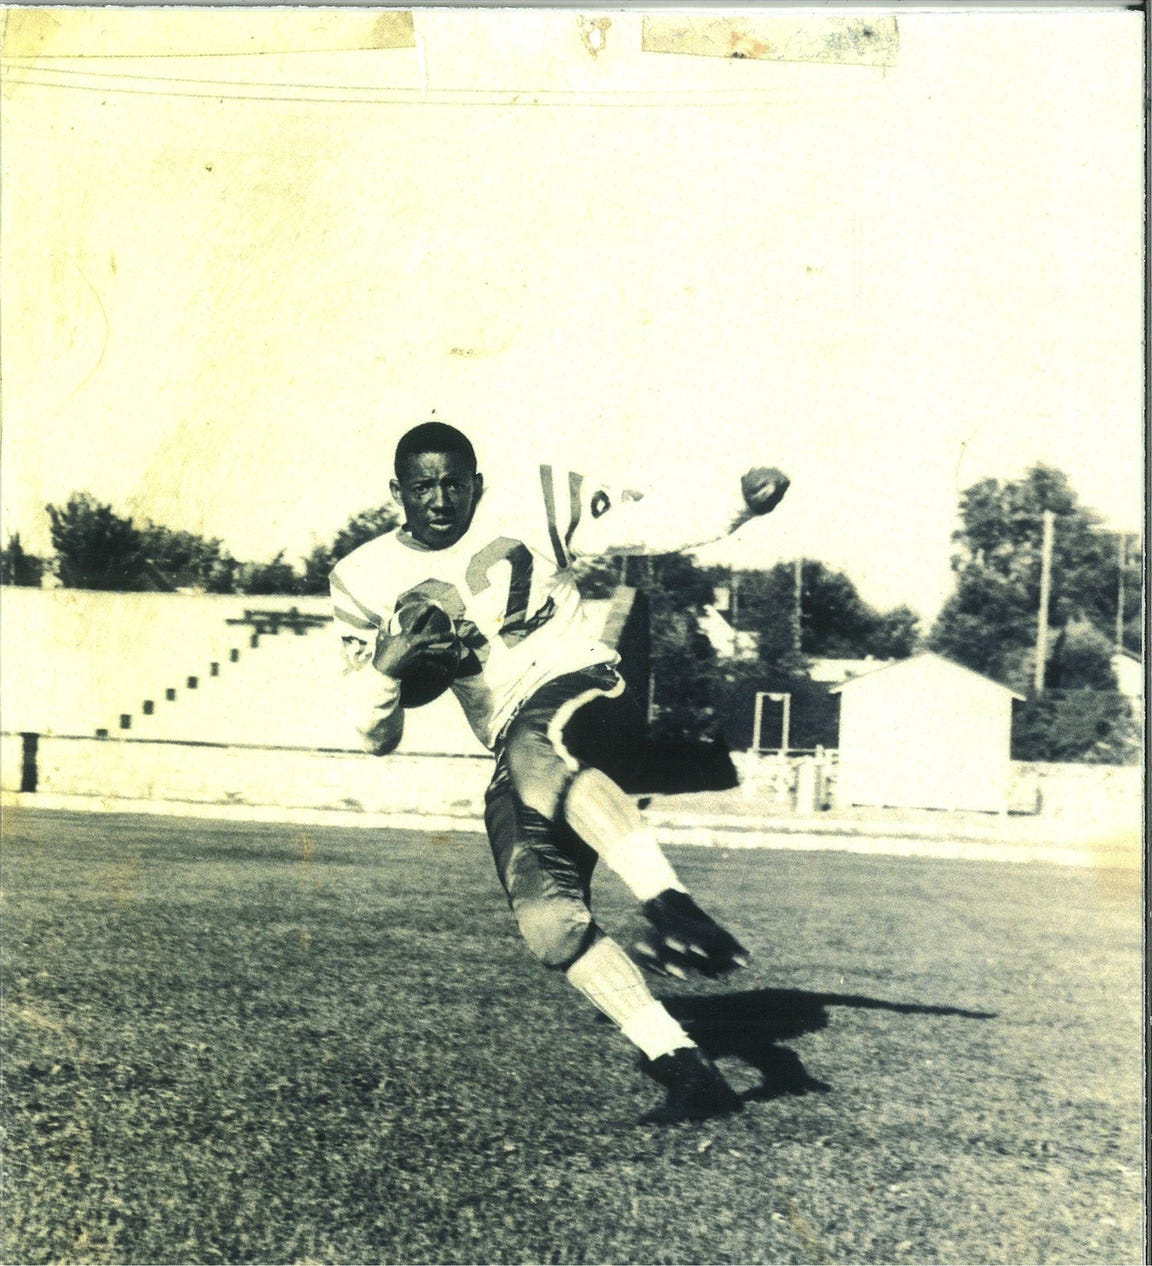 Running back James Lott integrated the Refugio football team in 1955 and went on to play college football in New Mexico.